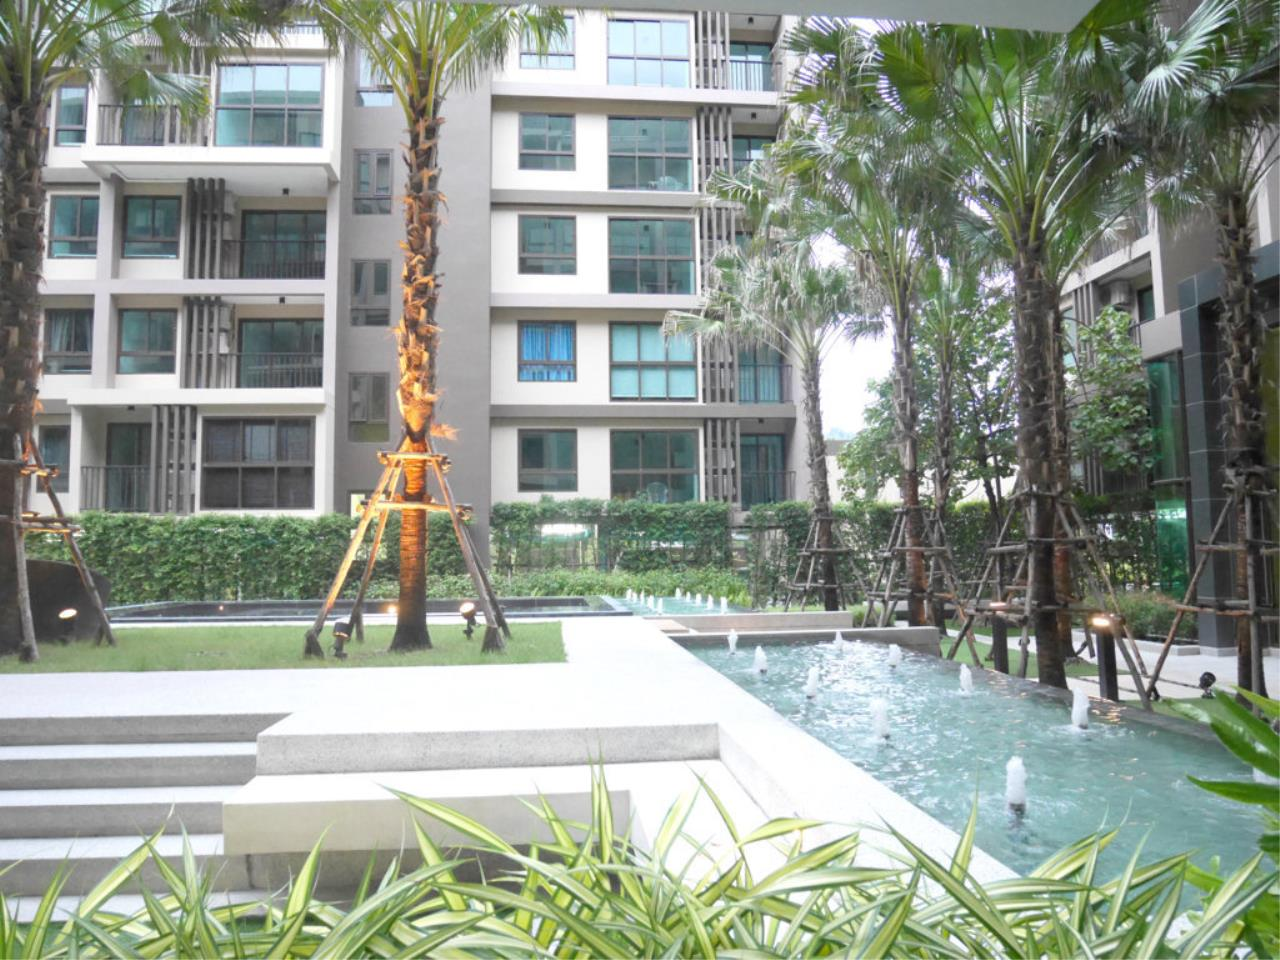 REAL Phuket  Agency's ZCape III Condominium @ Central Festival - 1-Bedroom Apartment 2